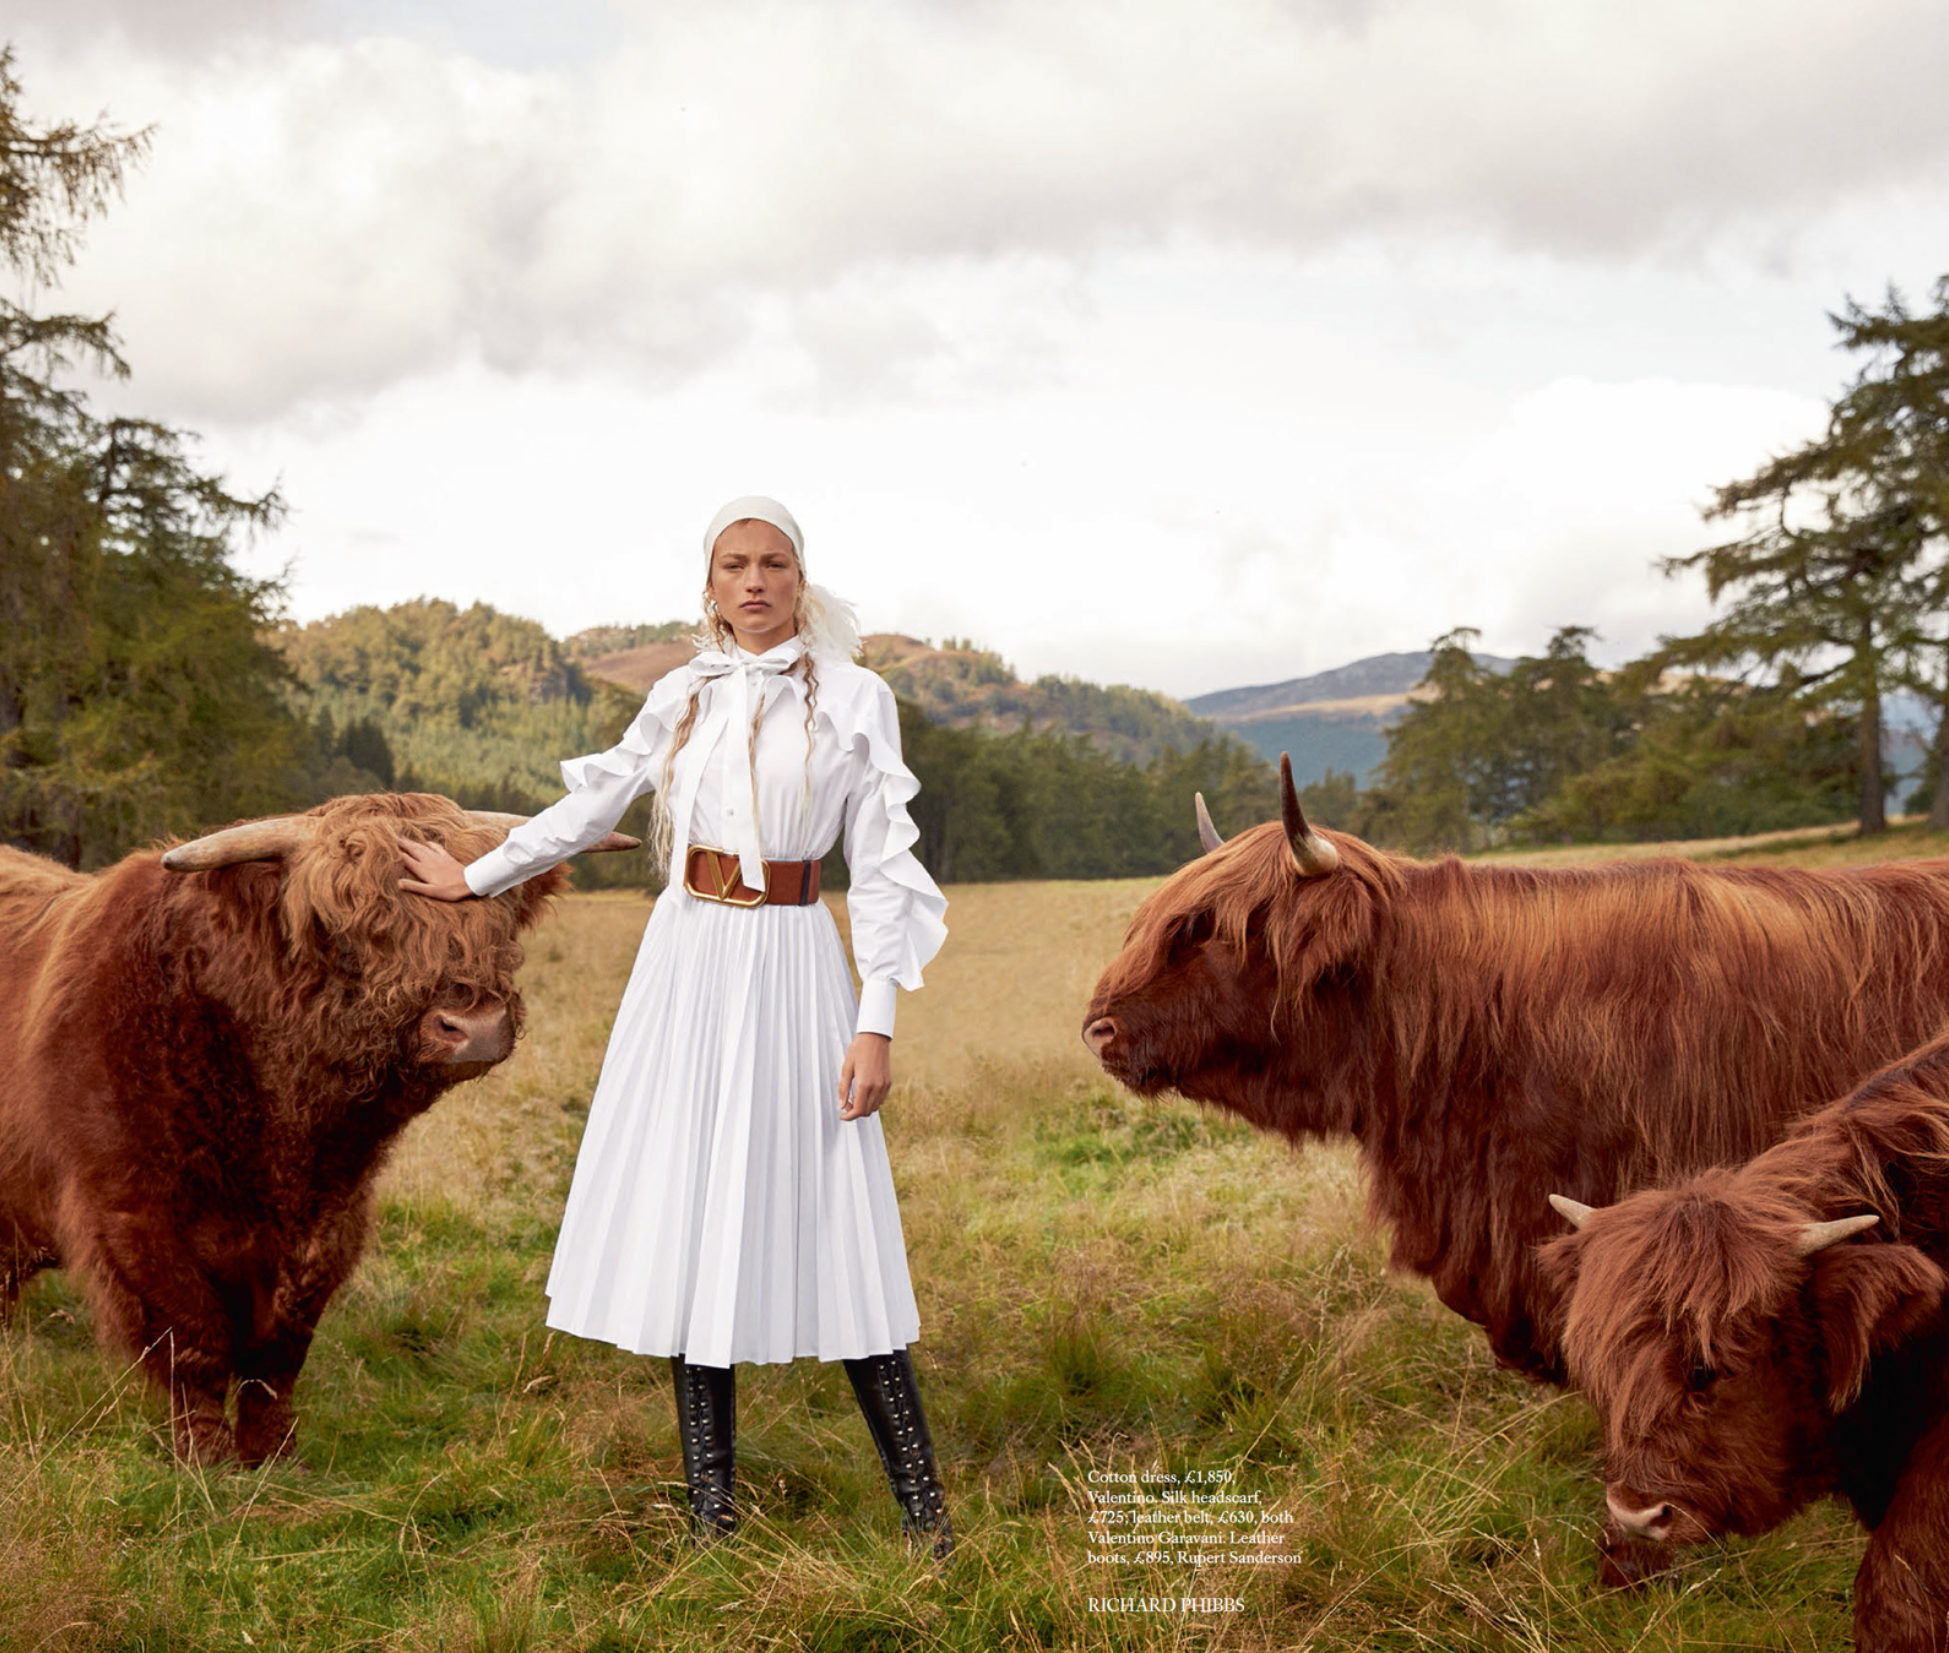 SCOTLAND FASHION STORY | HARPERS BAZAAR